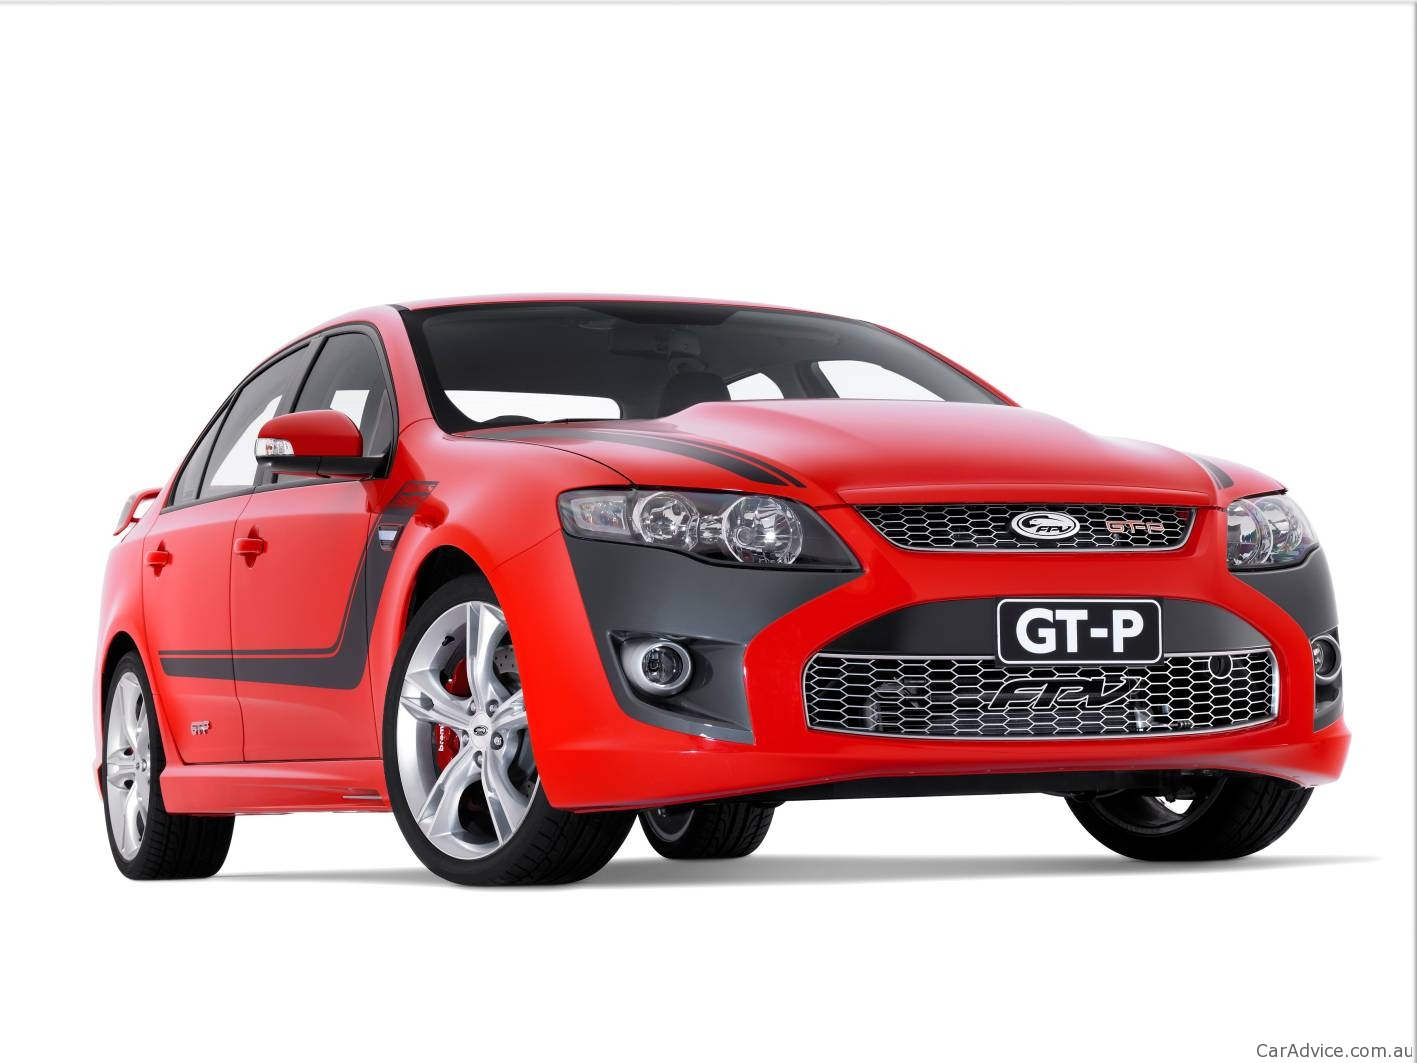 FPV GT-P Review - photos | CarAdvice